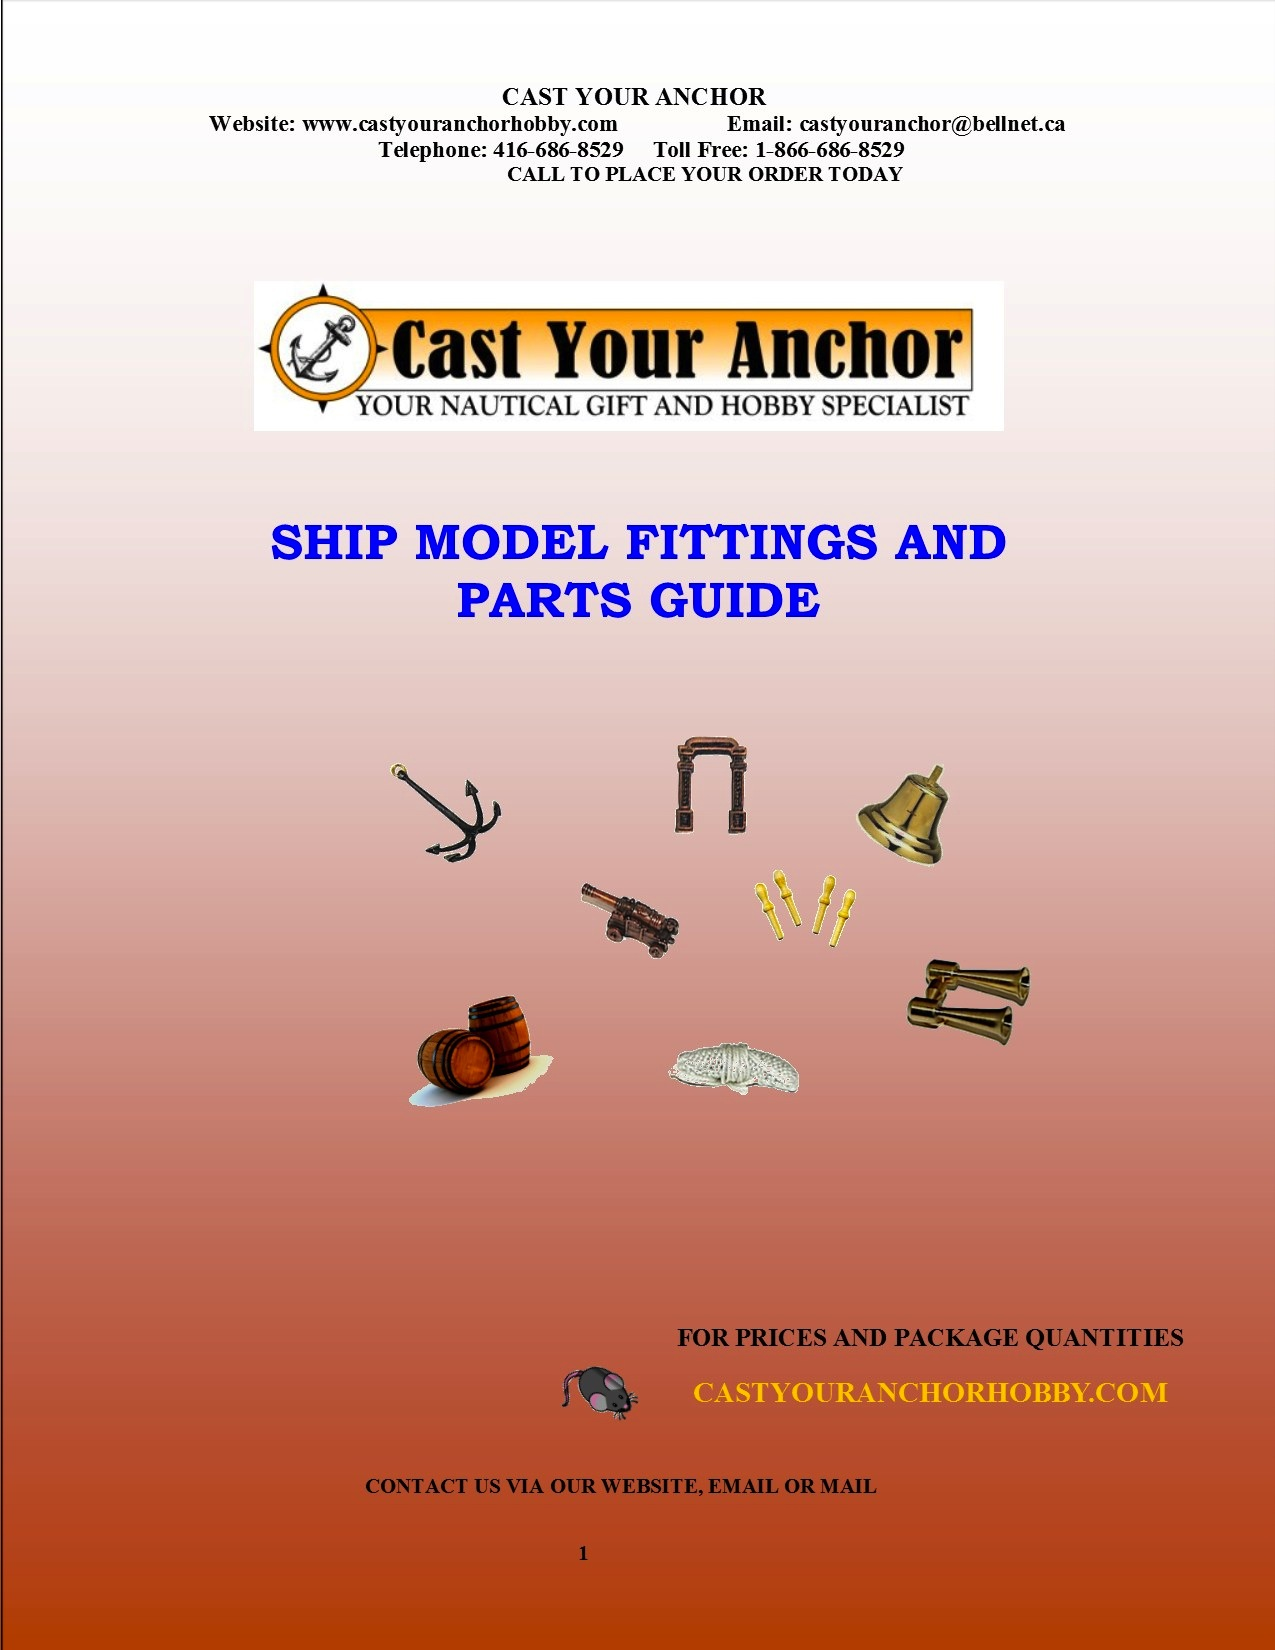 52012 - Ship Model Fittings and Parts Buyers Guide